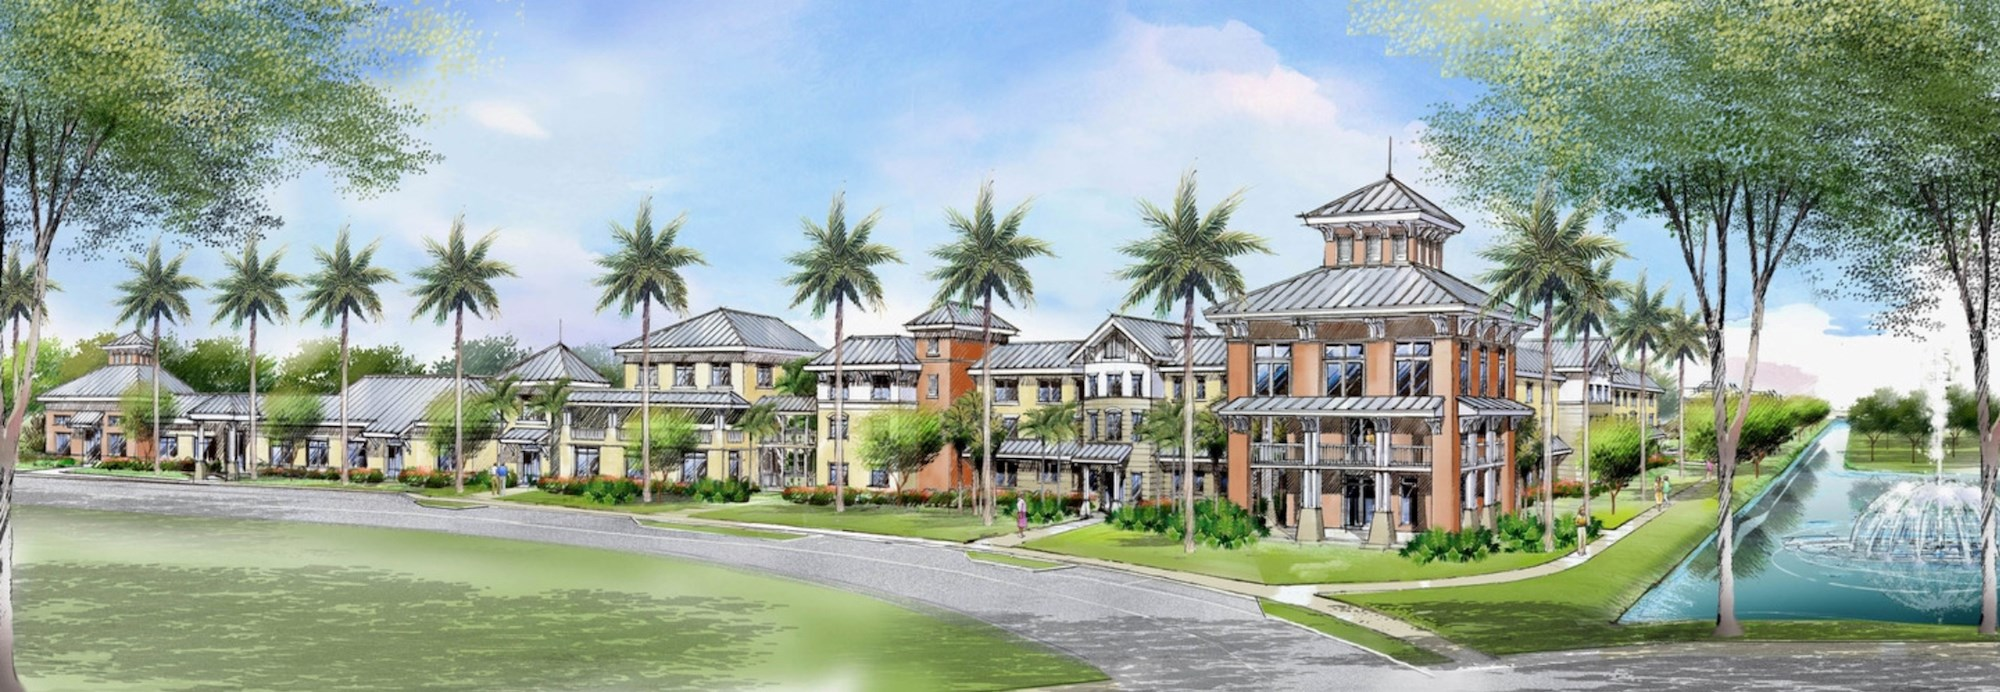 Town demand could delay opening of $75 million senior living complex